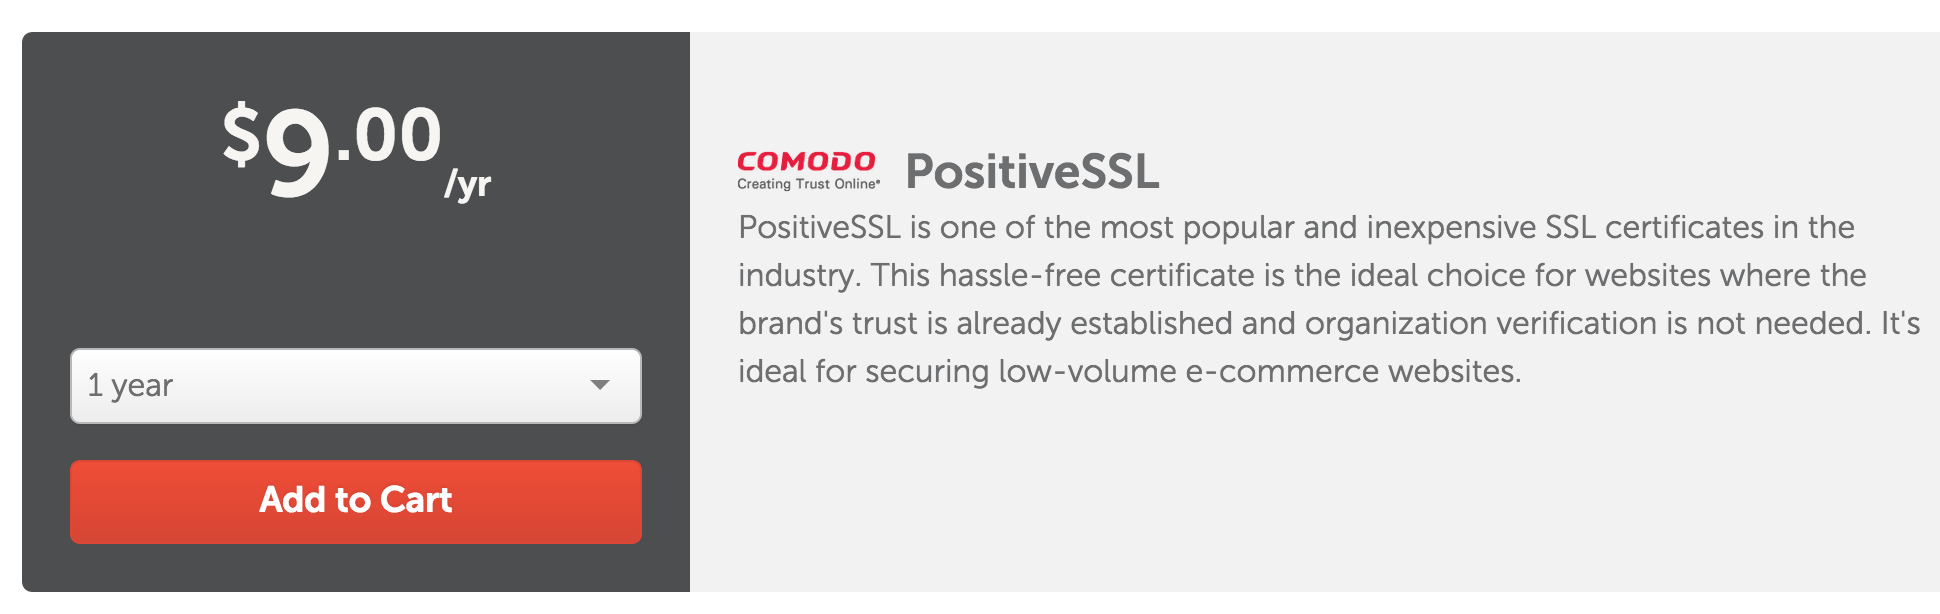 Comodo-PositiveSSL-Certificate-Crunchify-Tips